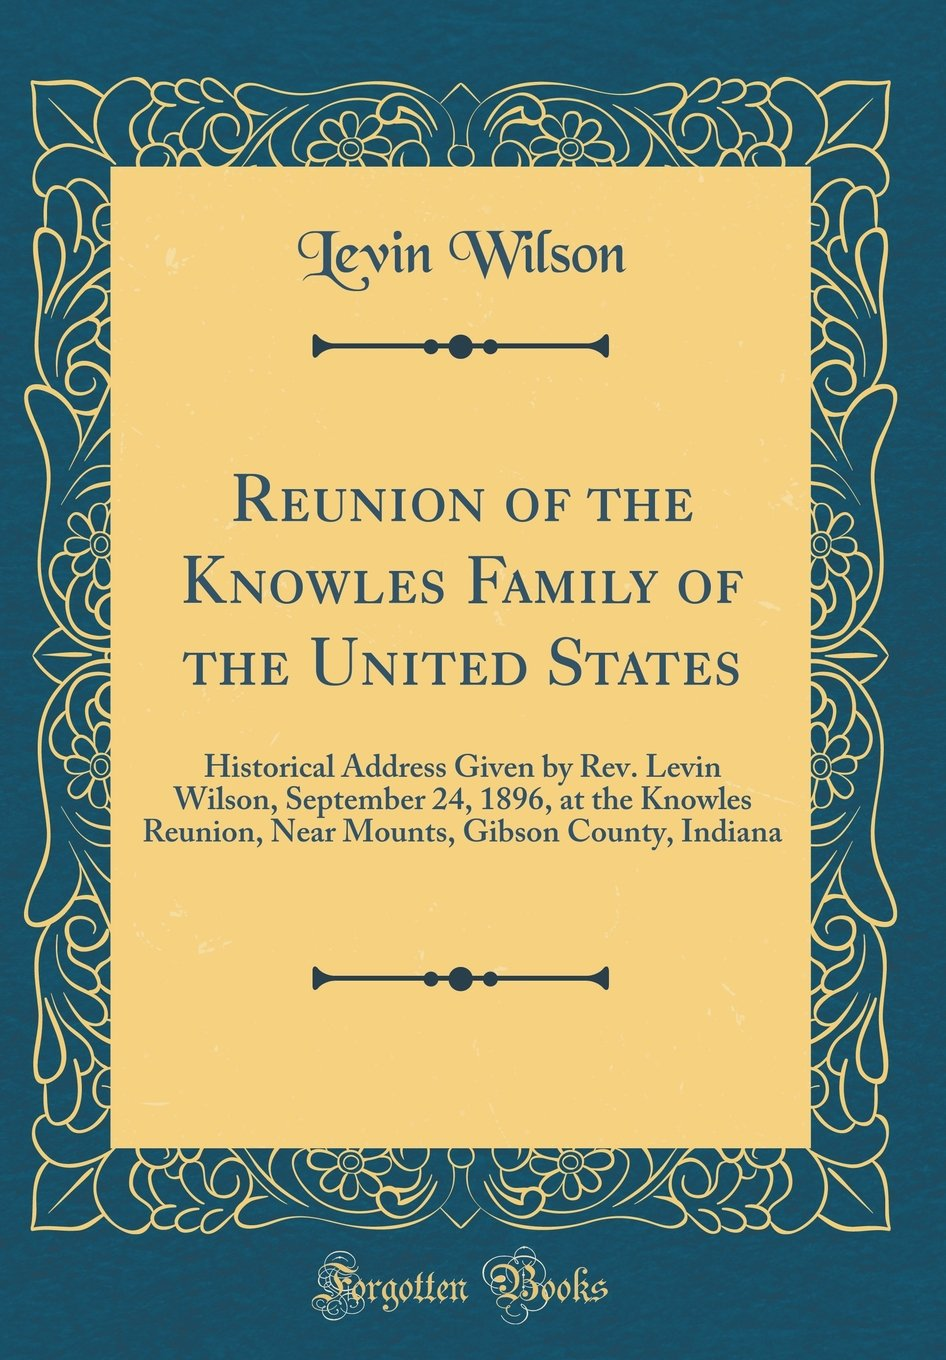 Reunion of the Knowles Family of the United States: Historical Address Given by Rev. Levin Wilson, September 24, 1896, at the Knowles Reunion, Near Mounts, Gibson County, Indiana (Classic Reprint)